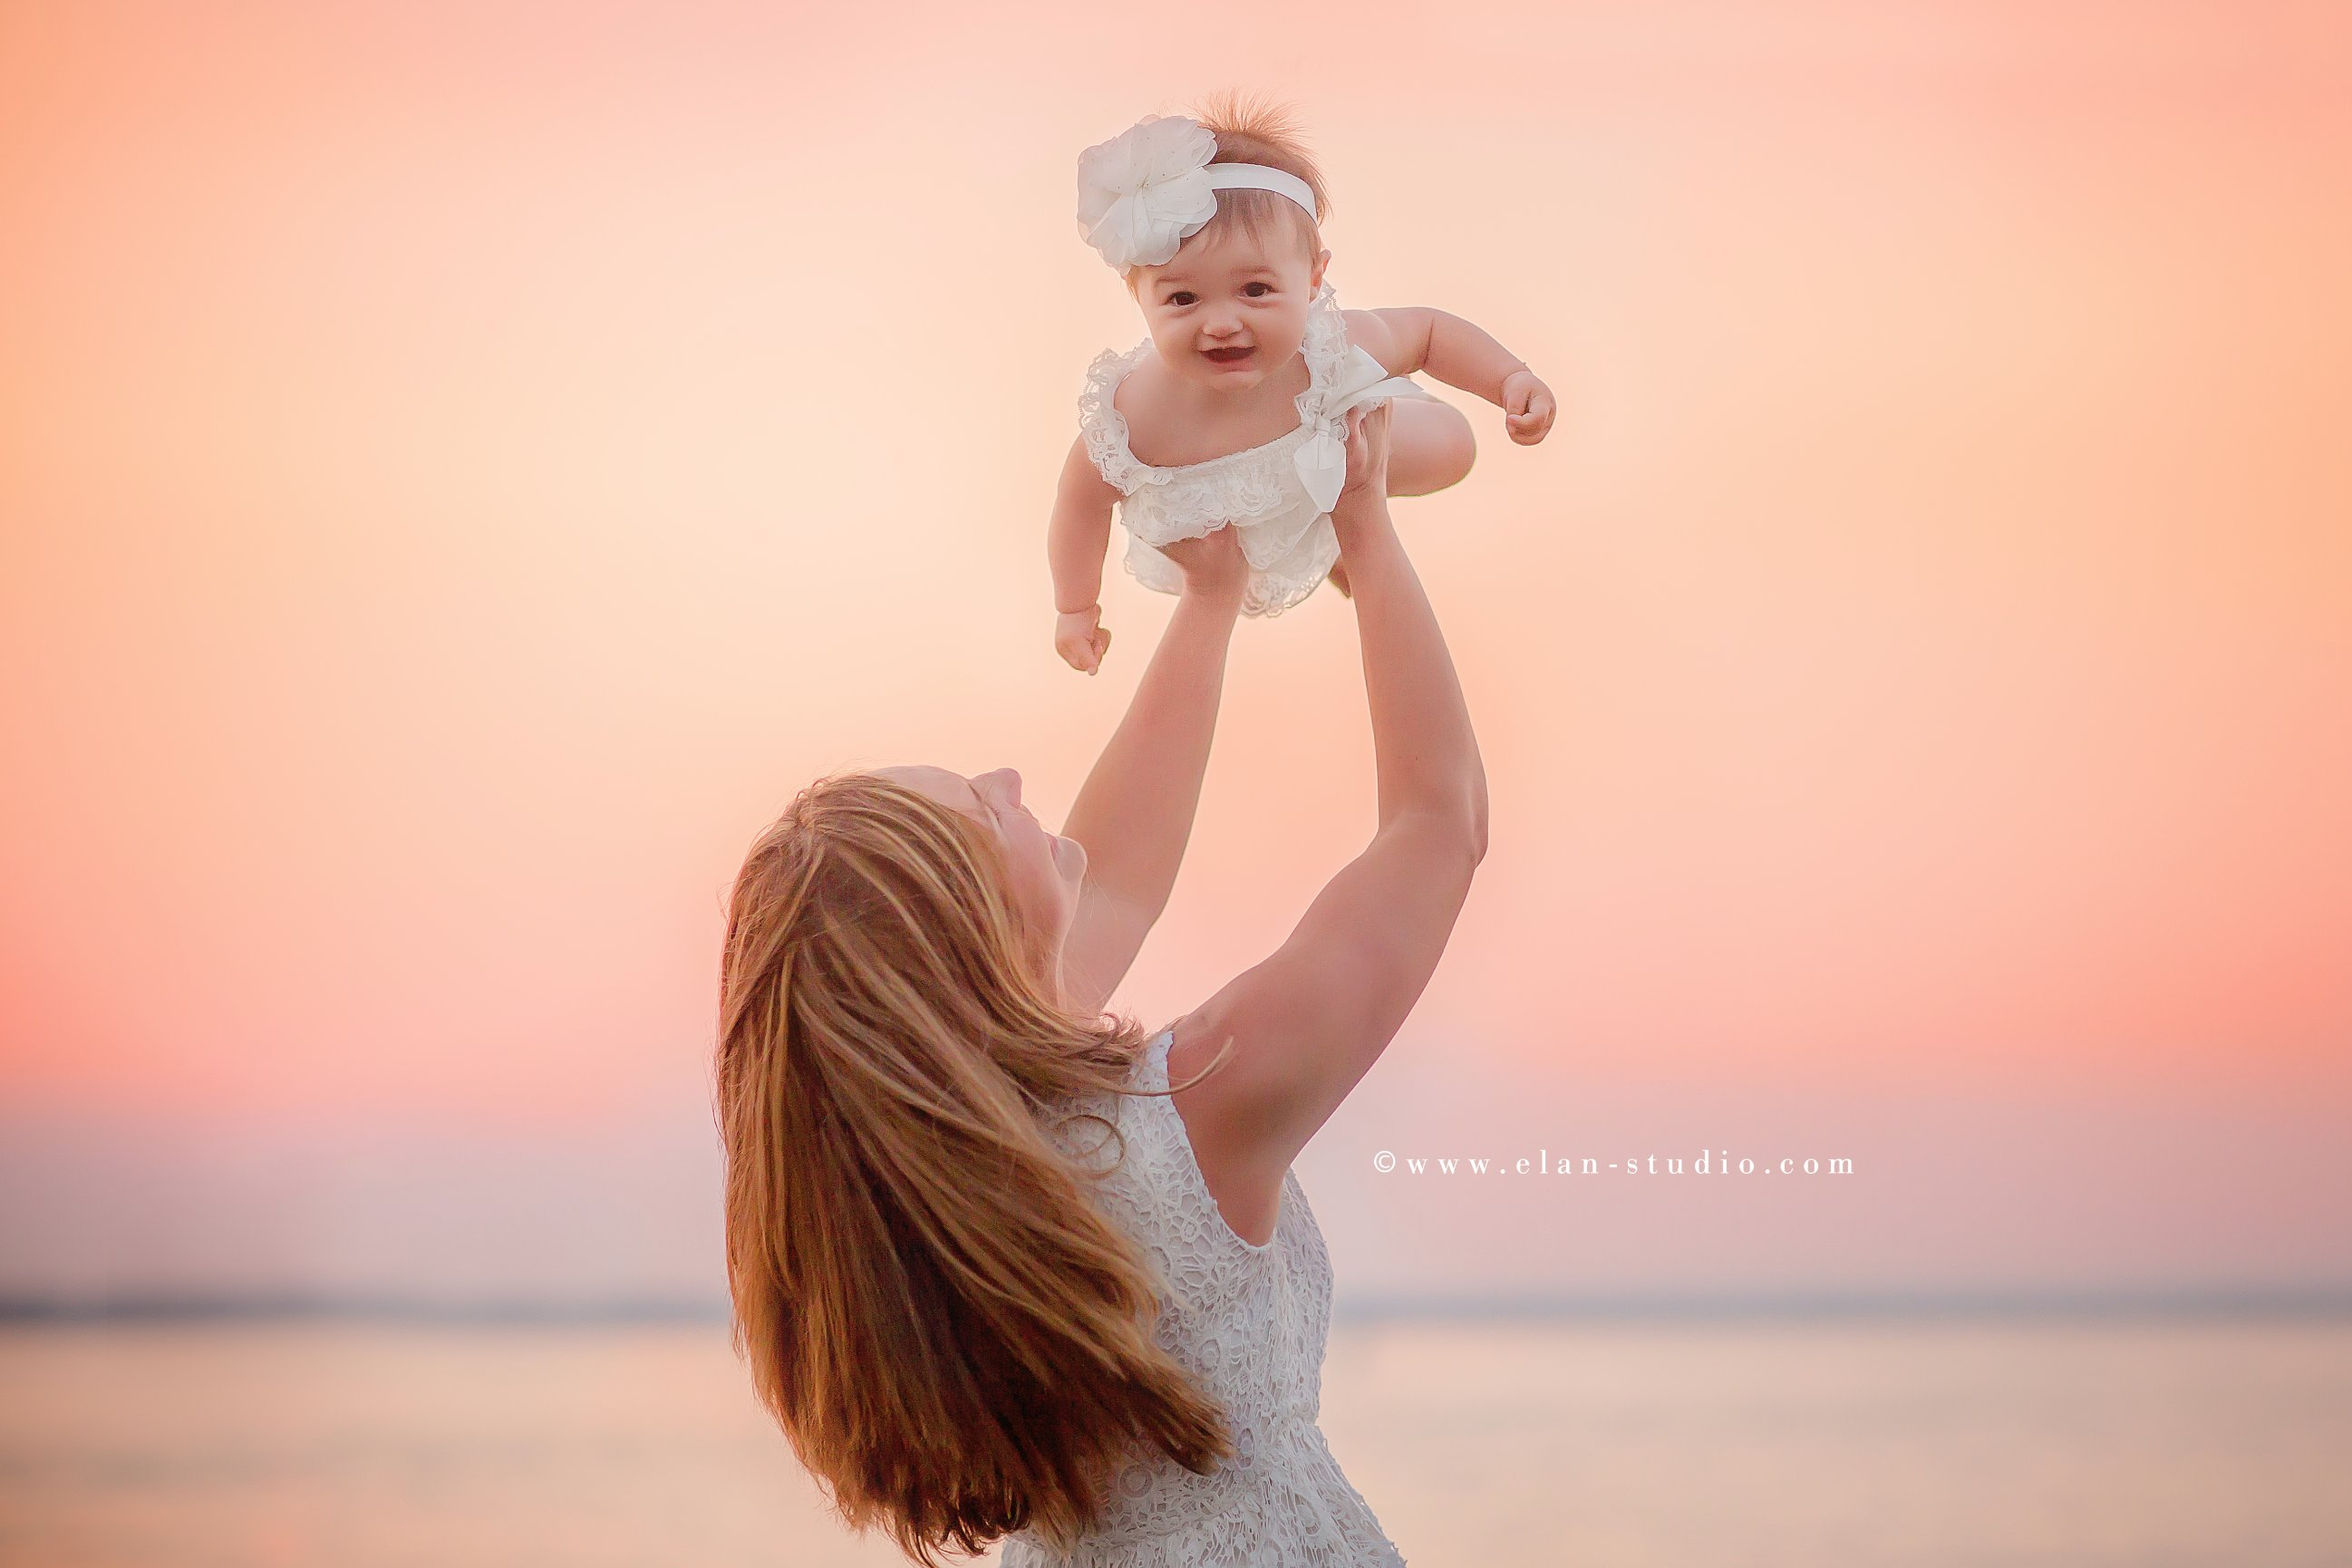 mother twirling with baby daughter smiling at camera